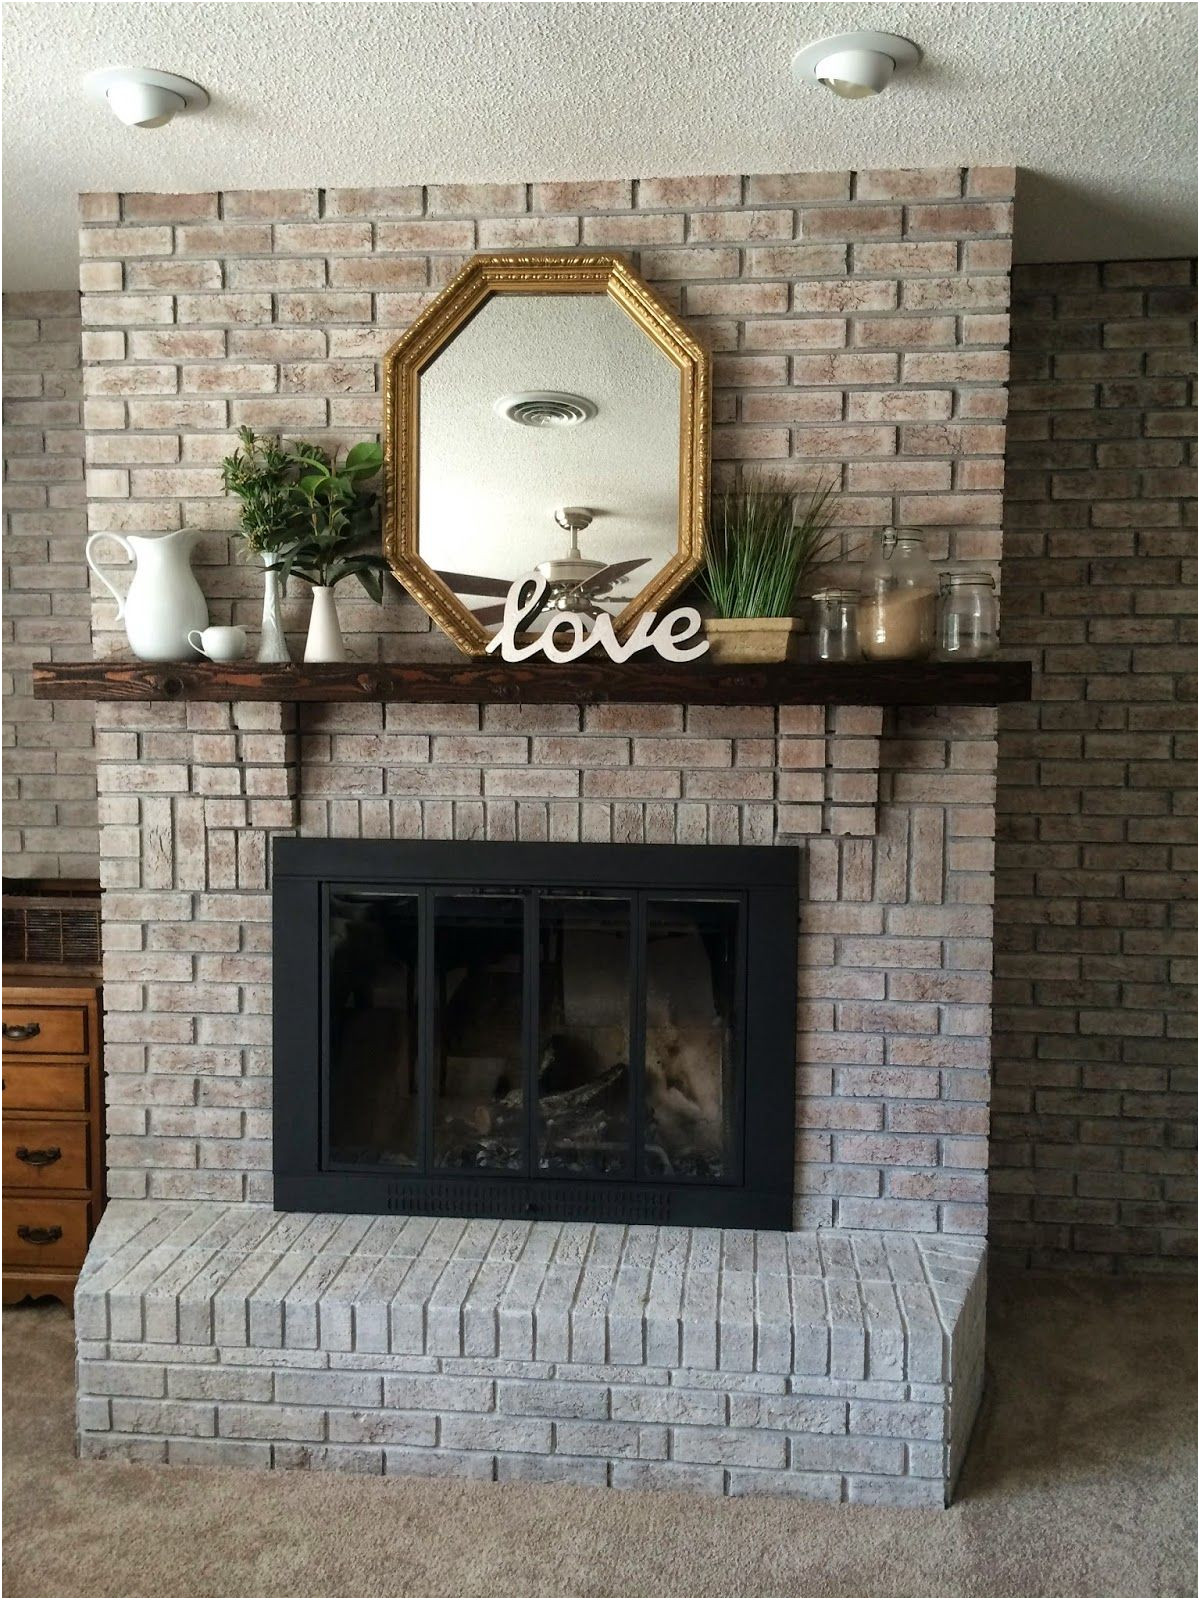 Fireplace Paint Ideas Best Of White Washing Brick with Gray Beige Walking with Dancers